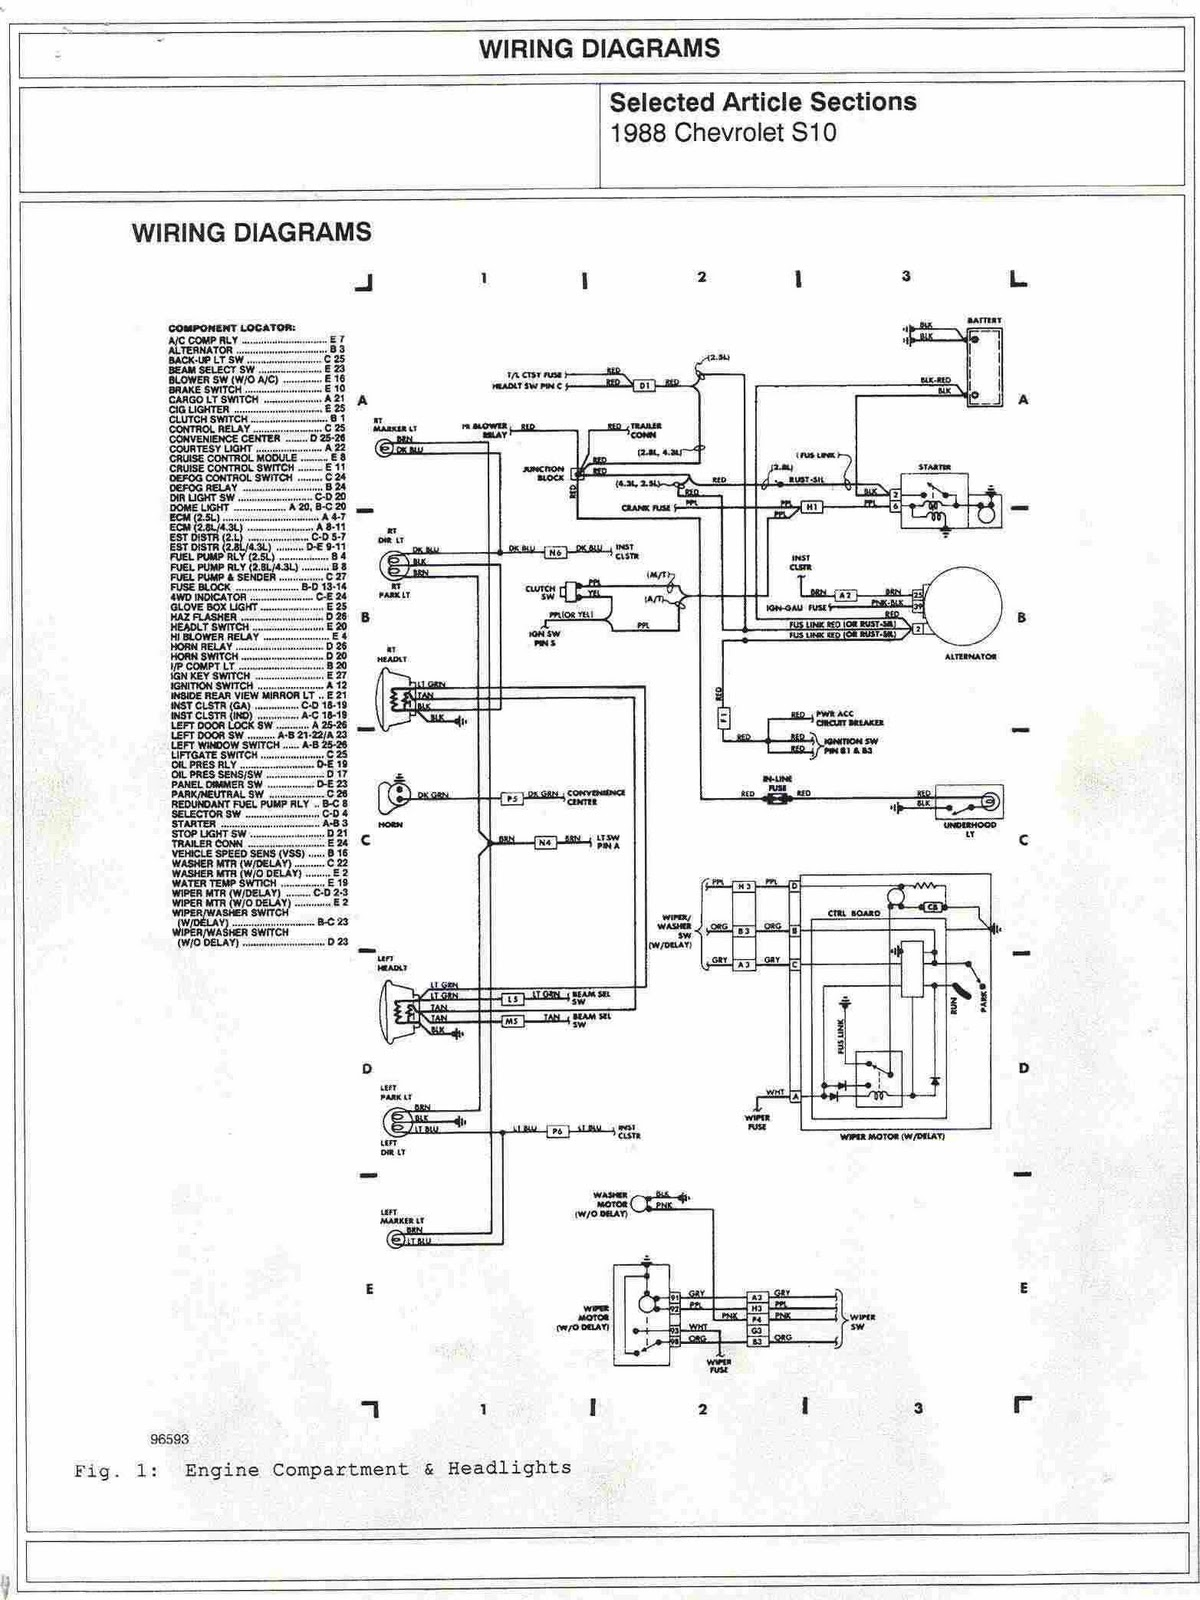 1988+Chevrolet+S10+Engine+Compartment+and+Headlights+Wiring+Diagrams 95 s10 wiring diagram 95 tahoe wiring diagram \u2022 wiring diagrams  at bakdesigns.co